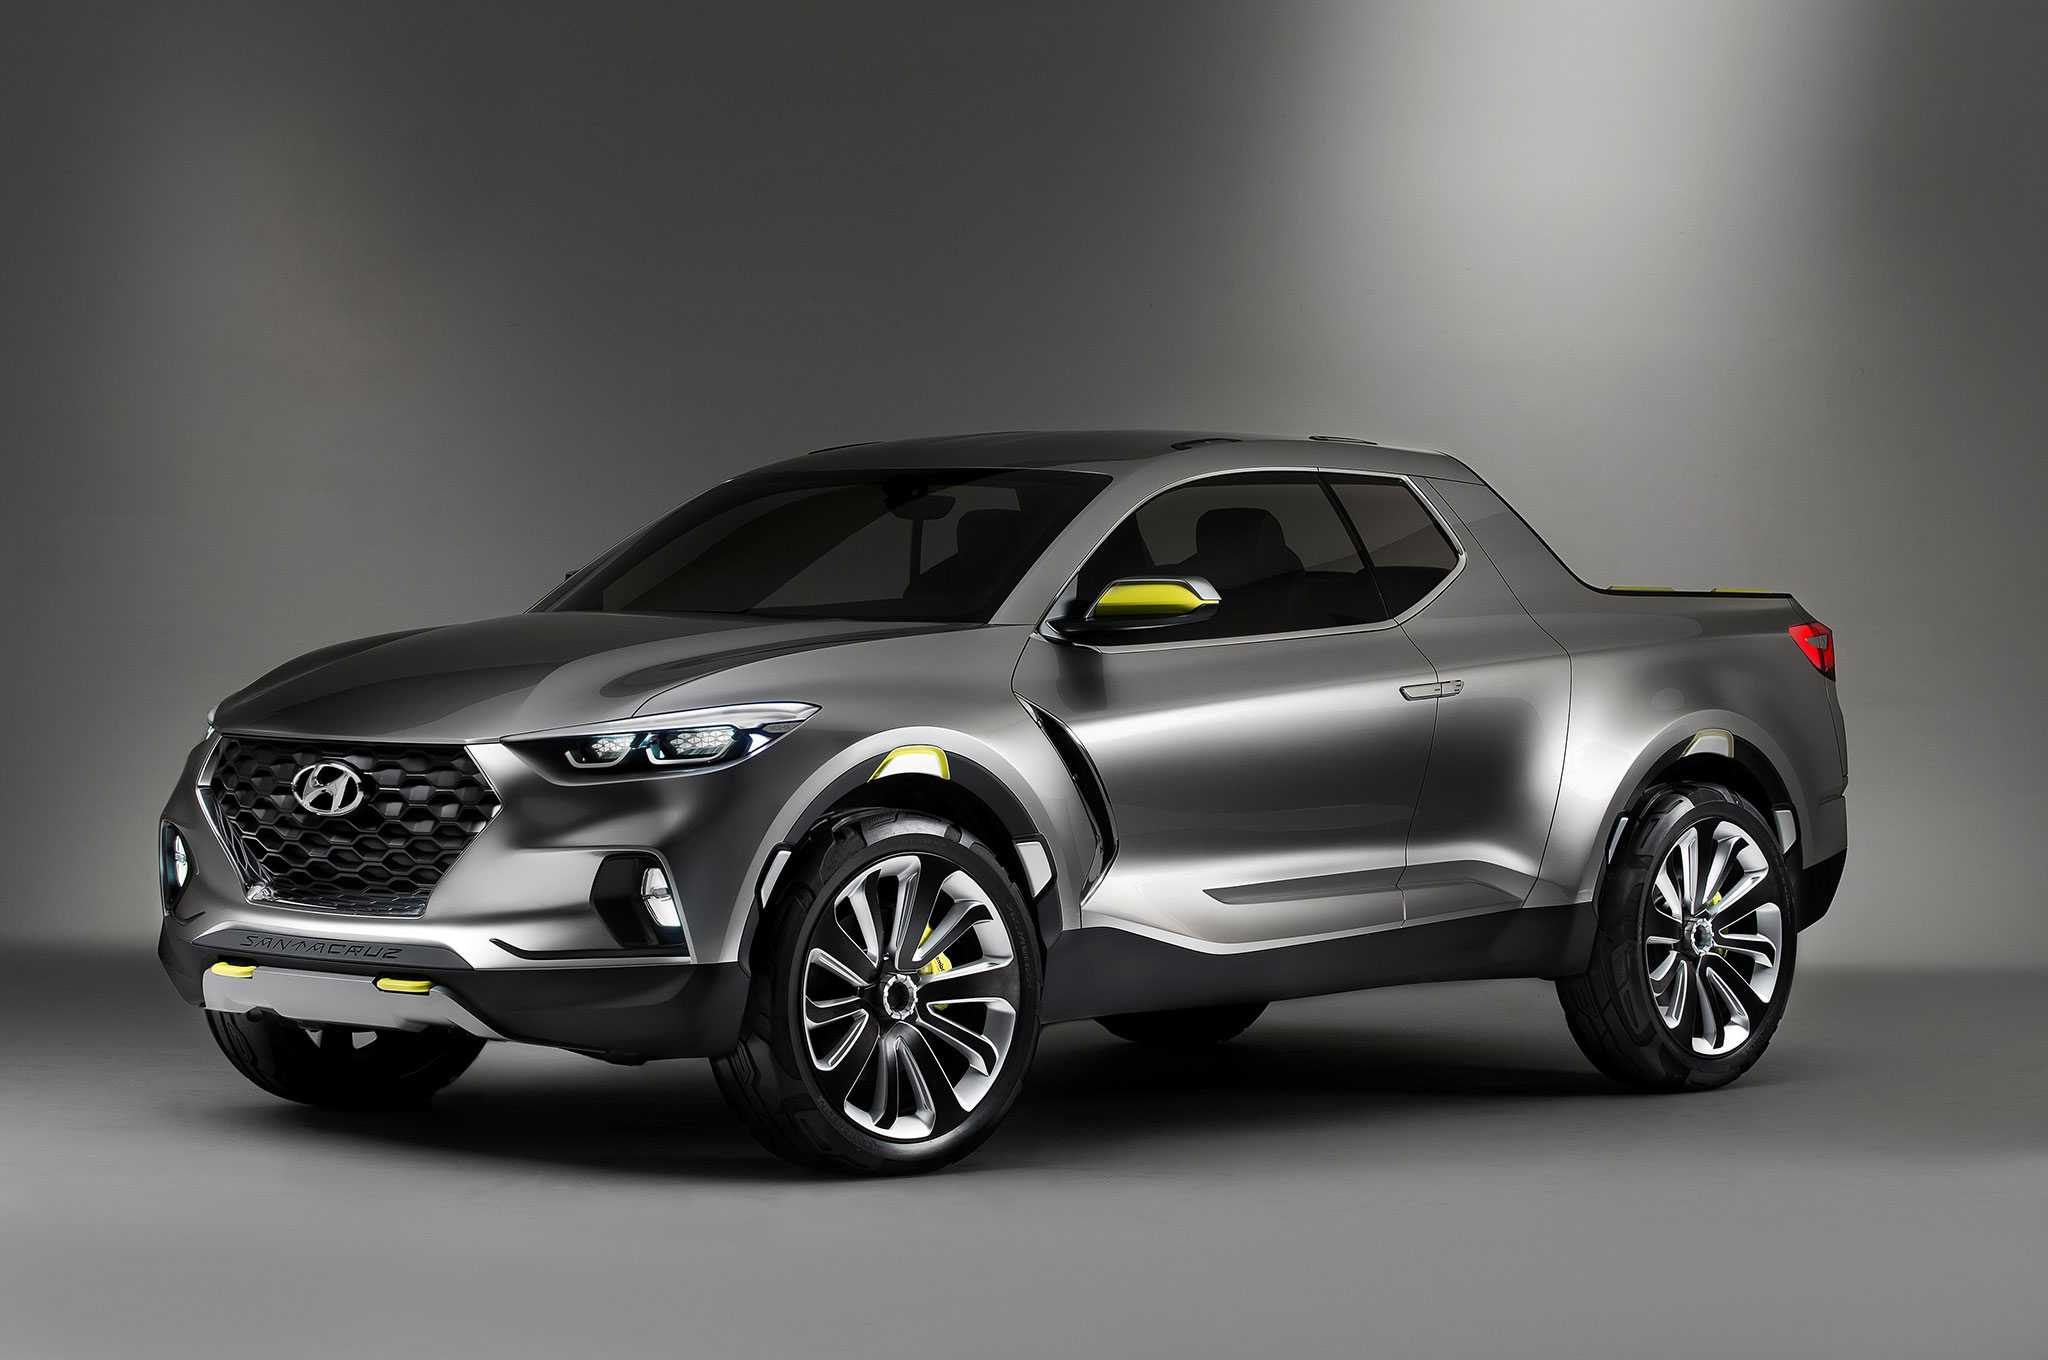 2019 Hyundai Santa Cruz Pickup Truck Nearing Production